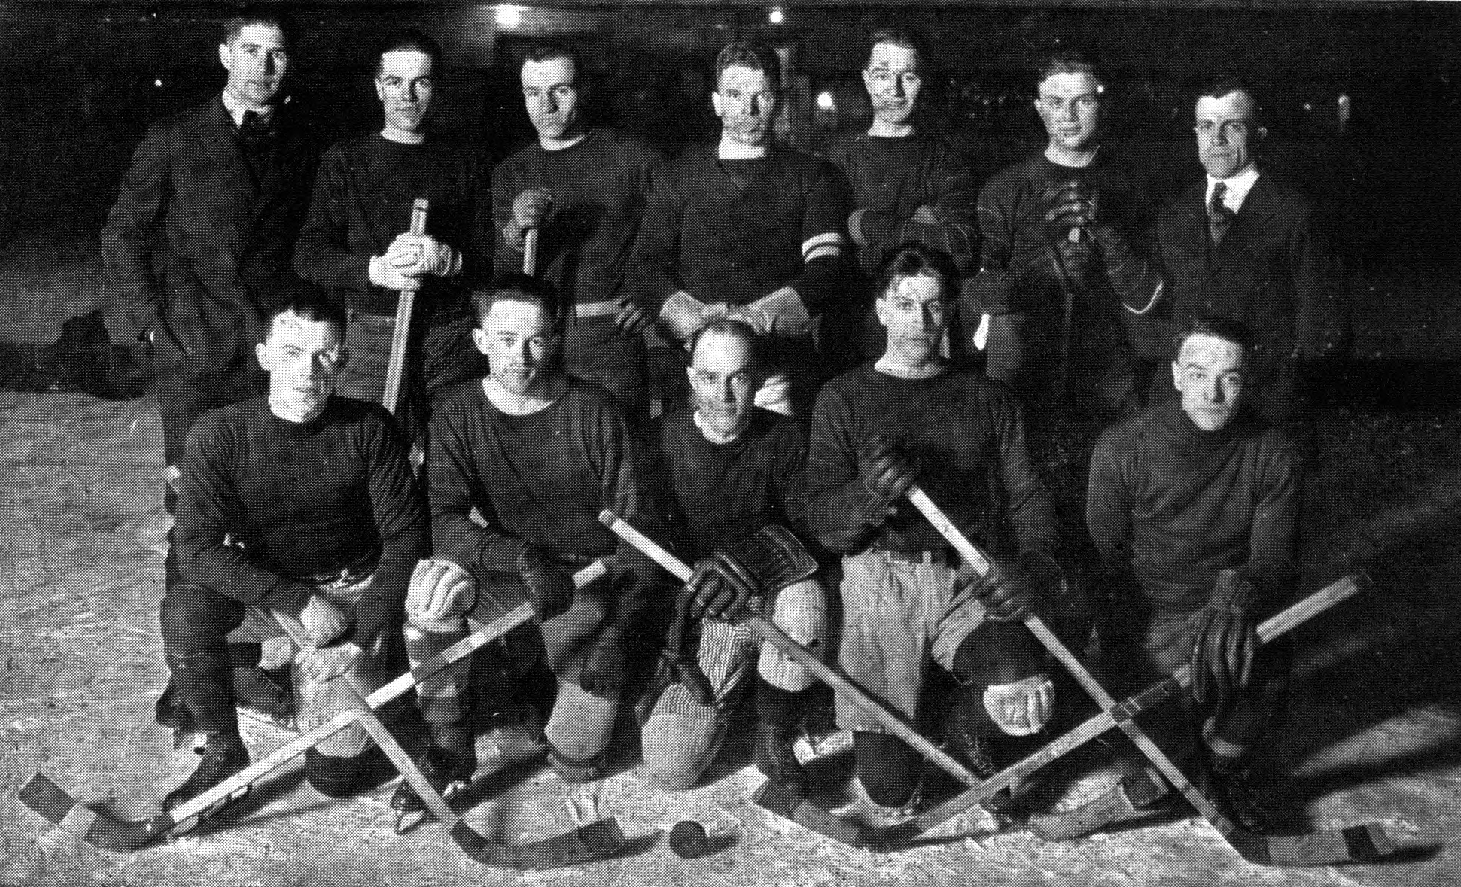 the early history of ice hockey Montréal, windsor (nova scotia), and kingston (ontario) have all claimed to be the birthplace of ice hockey, but there is little clear evidence to pinpoint the game's origins the first game of organized ice hockey, as we would recognize it today, was in montréal in 1875, where jga creighton, a mcgill.